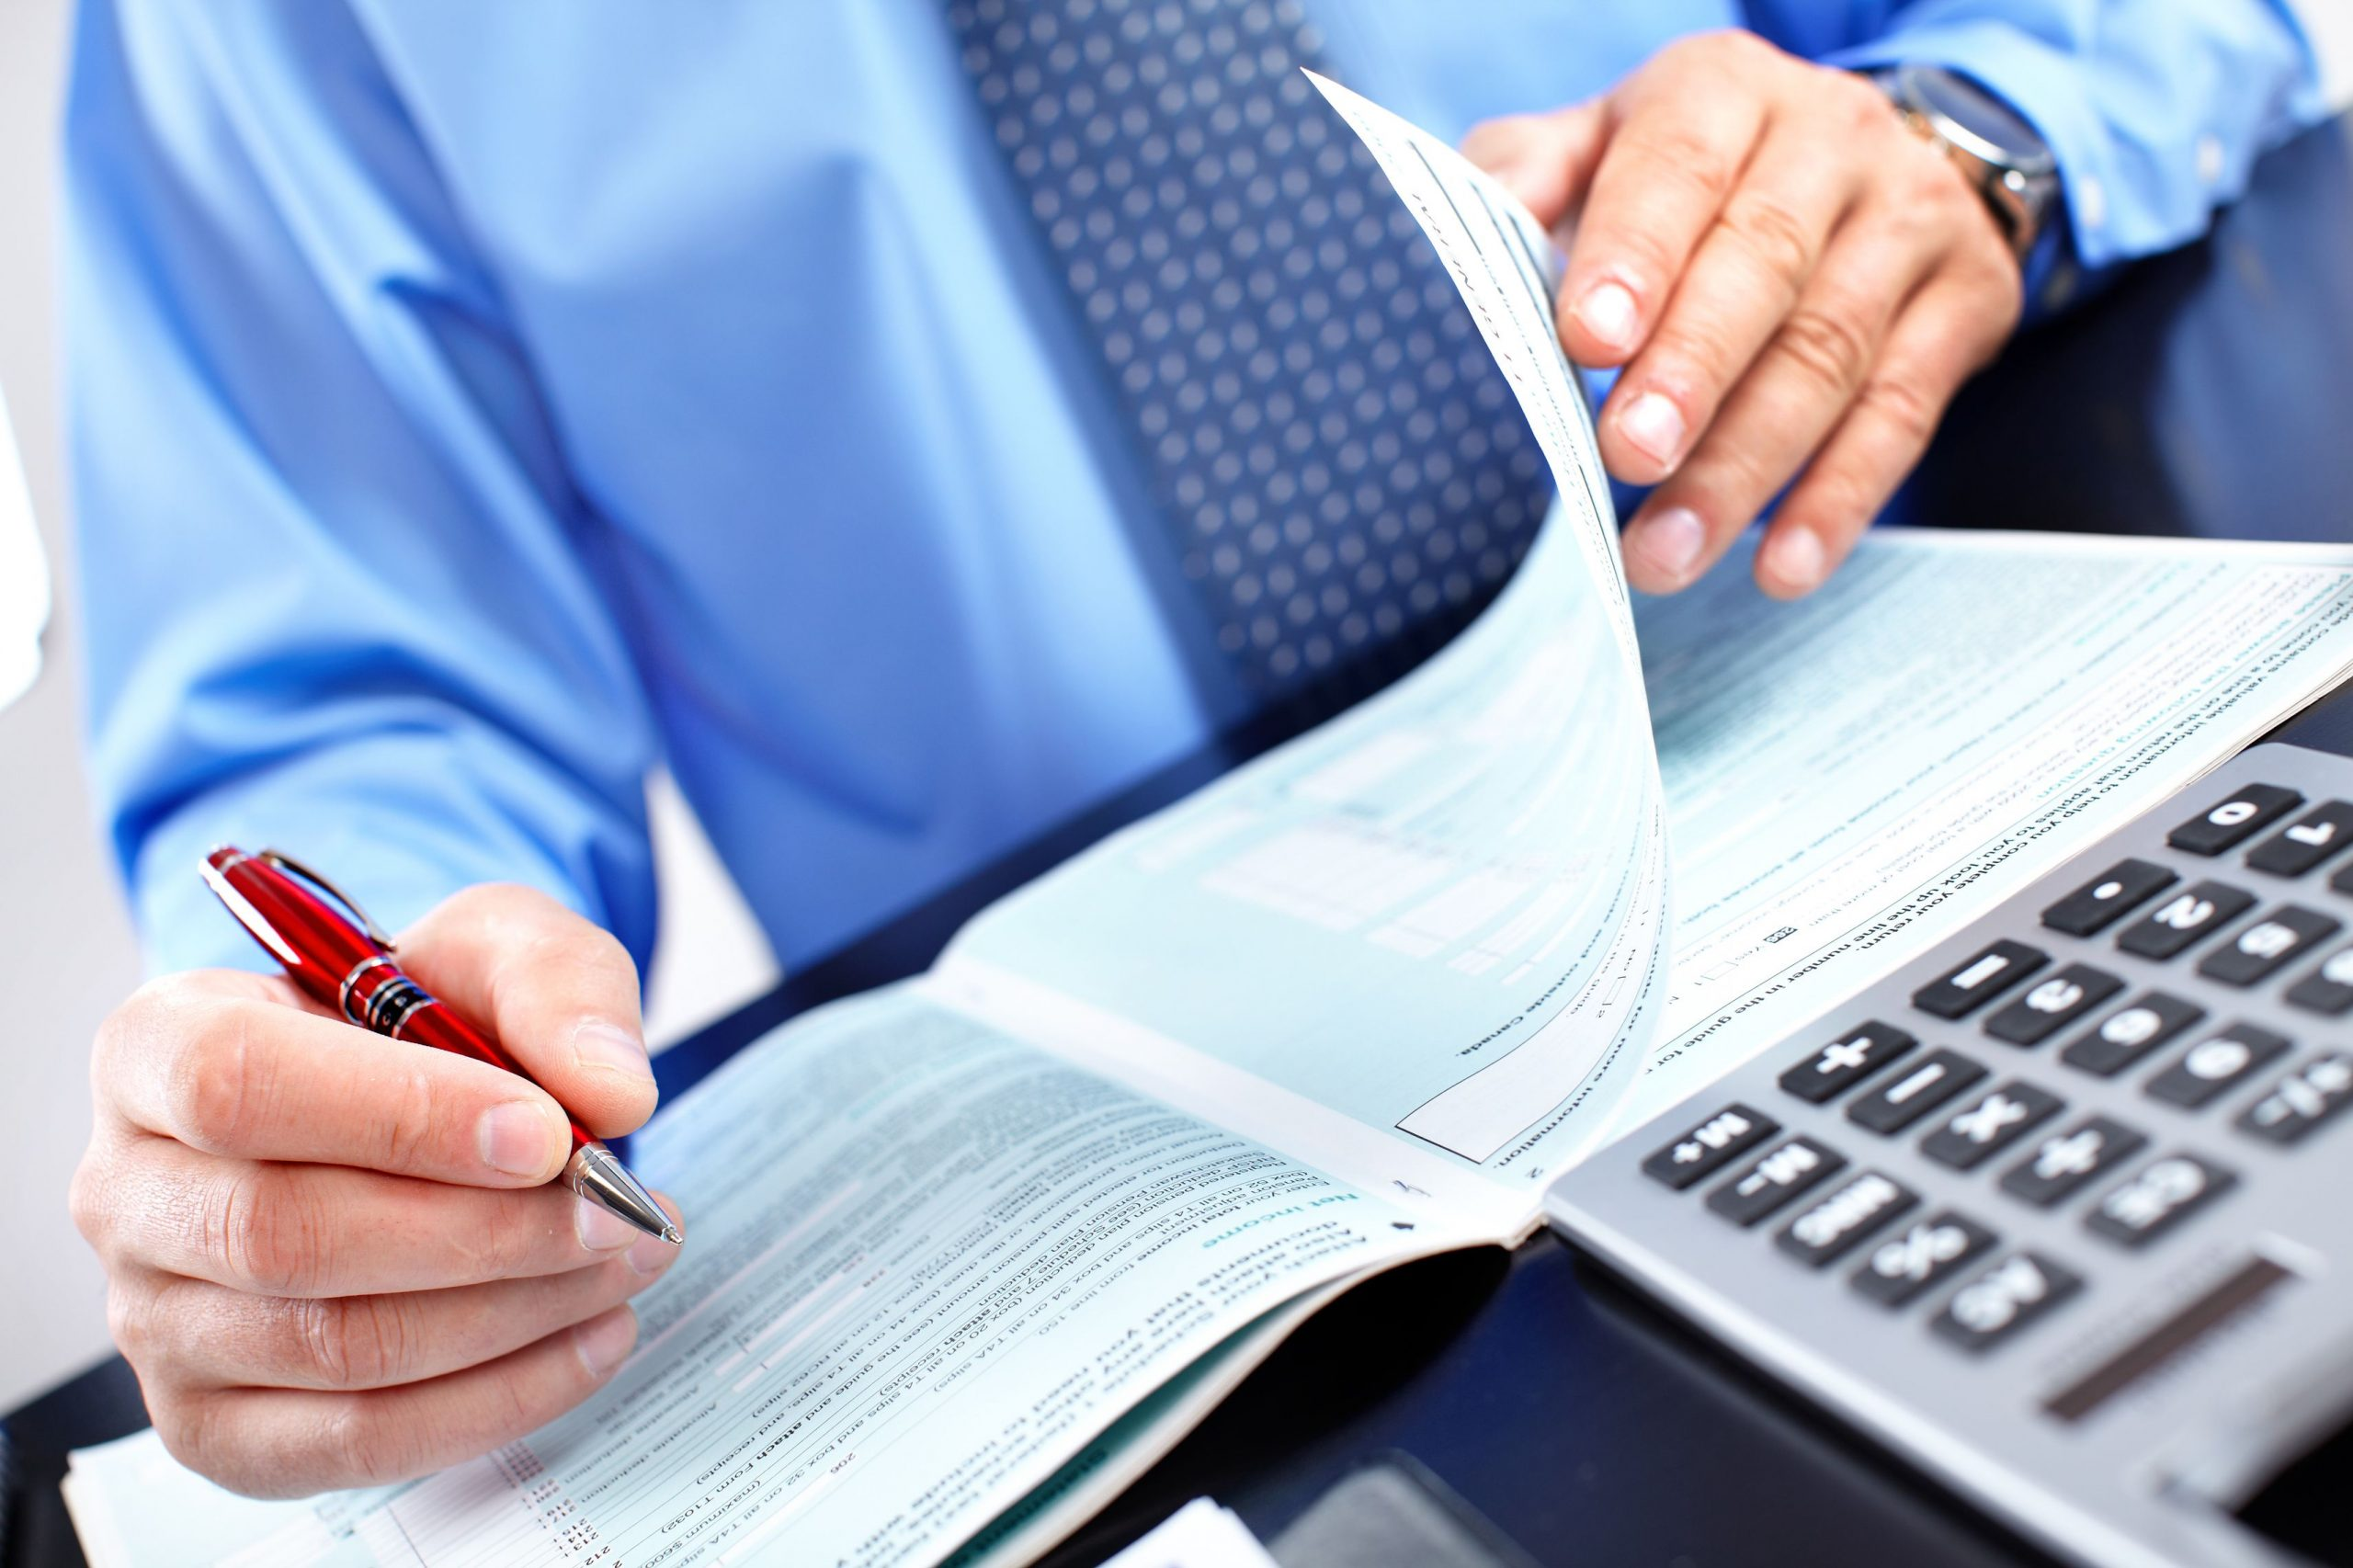 Think You're Paying Too Much Tax? Here's How A Personal Tax Advisor Can Help